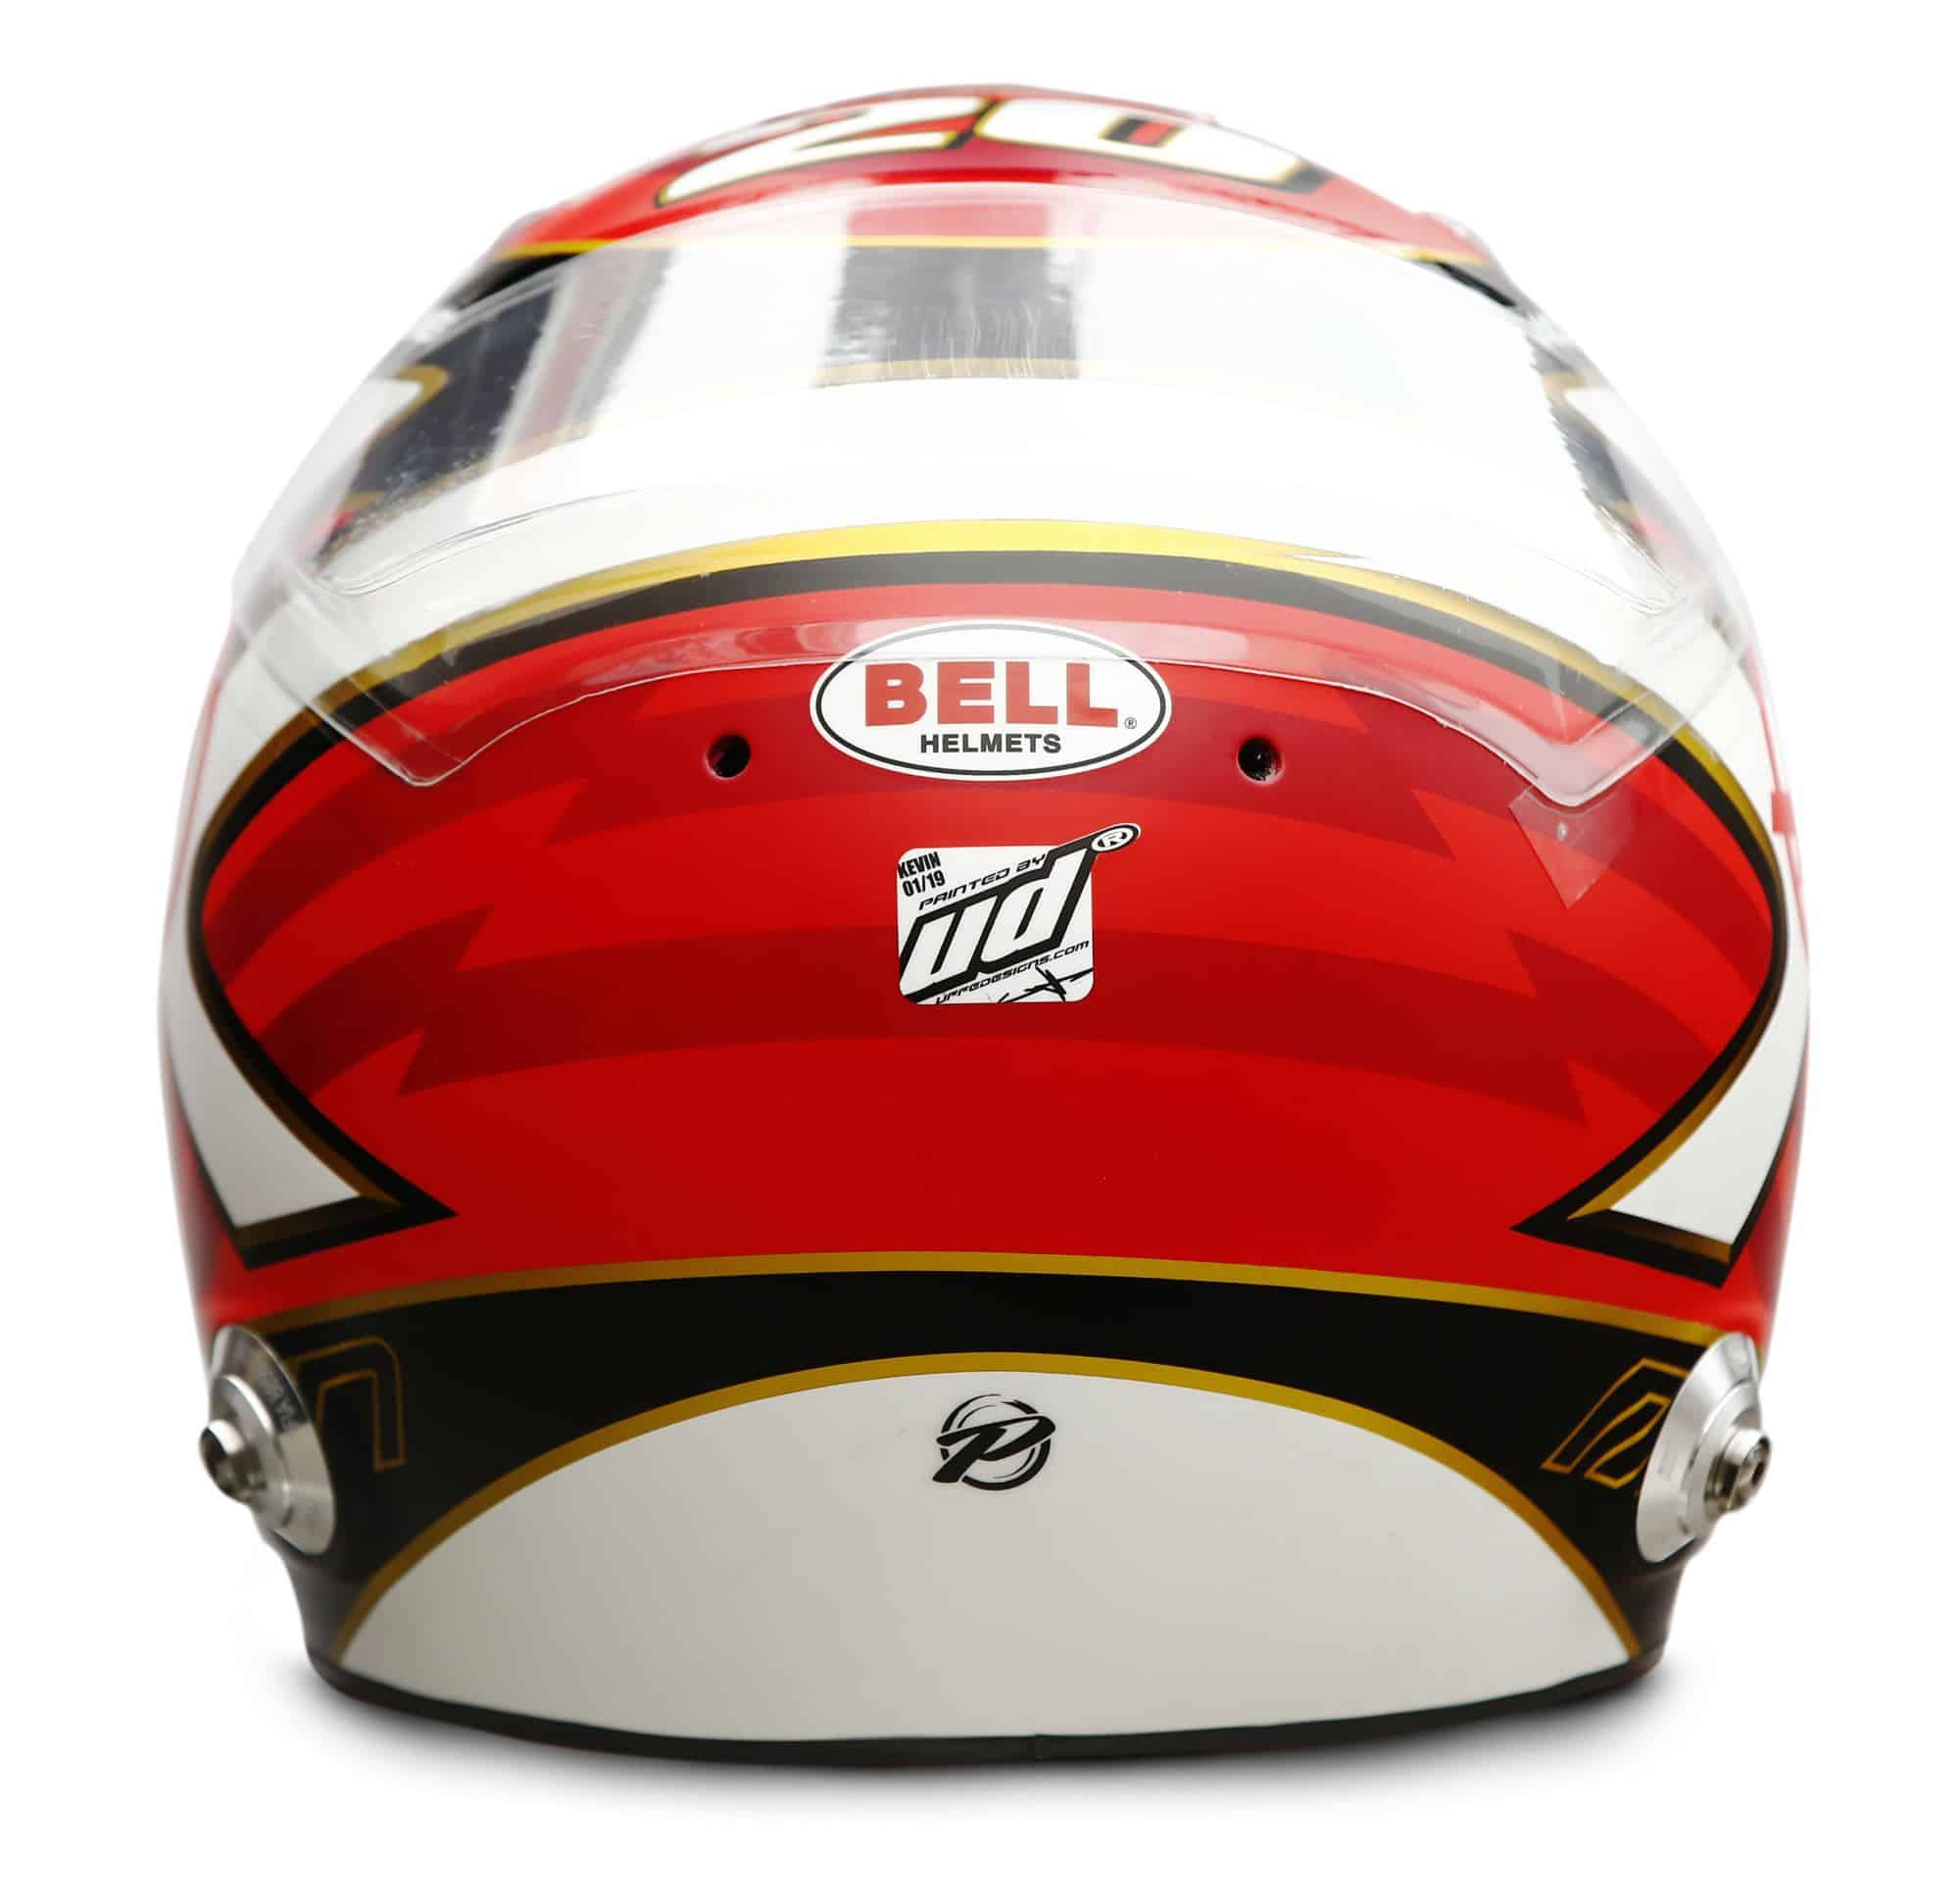 2019 Rich Energy Haas F1 Team Kevin Magnussen helmet rear Photo Haas Edited by MAXF1net